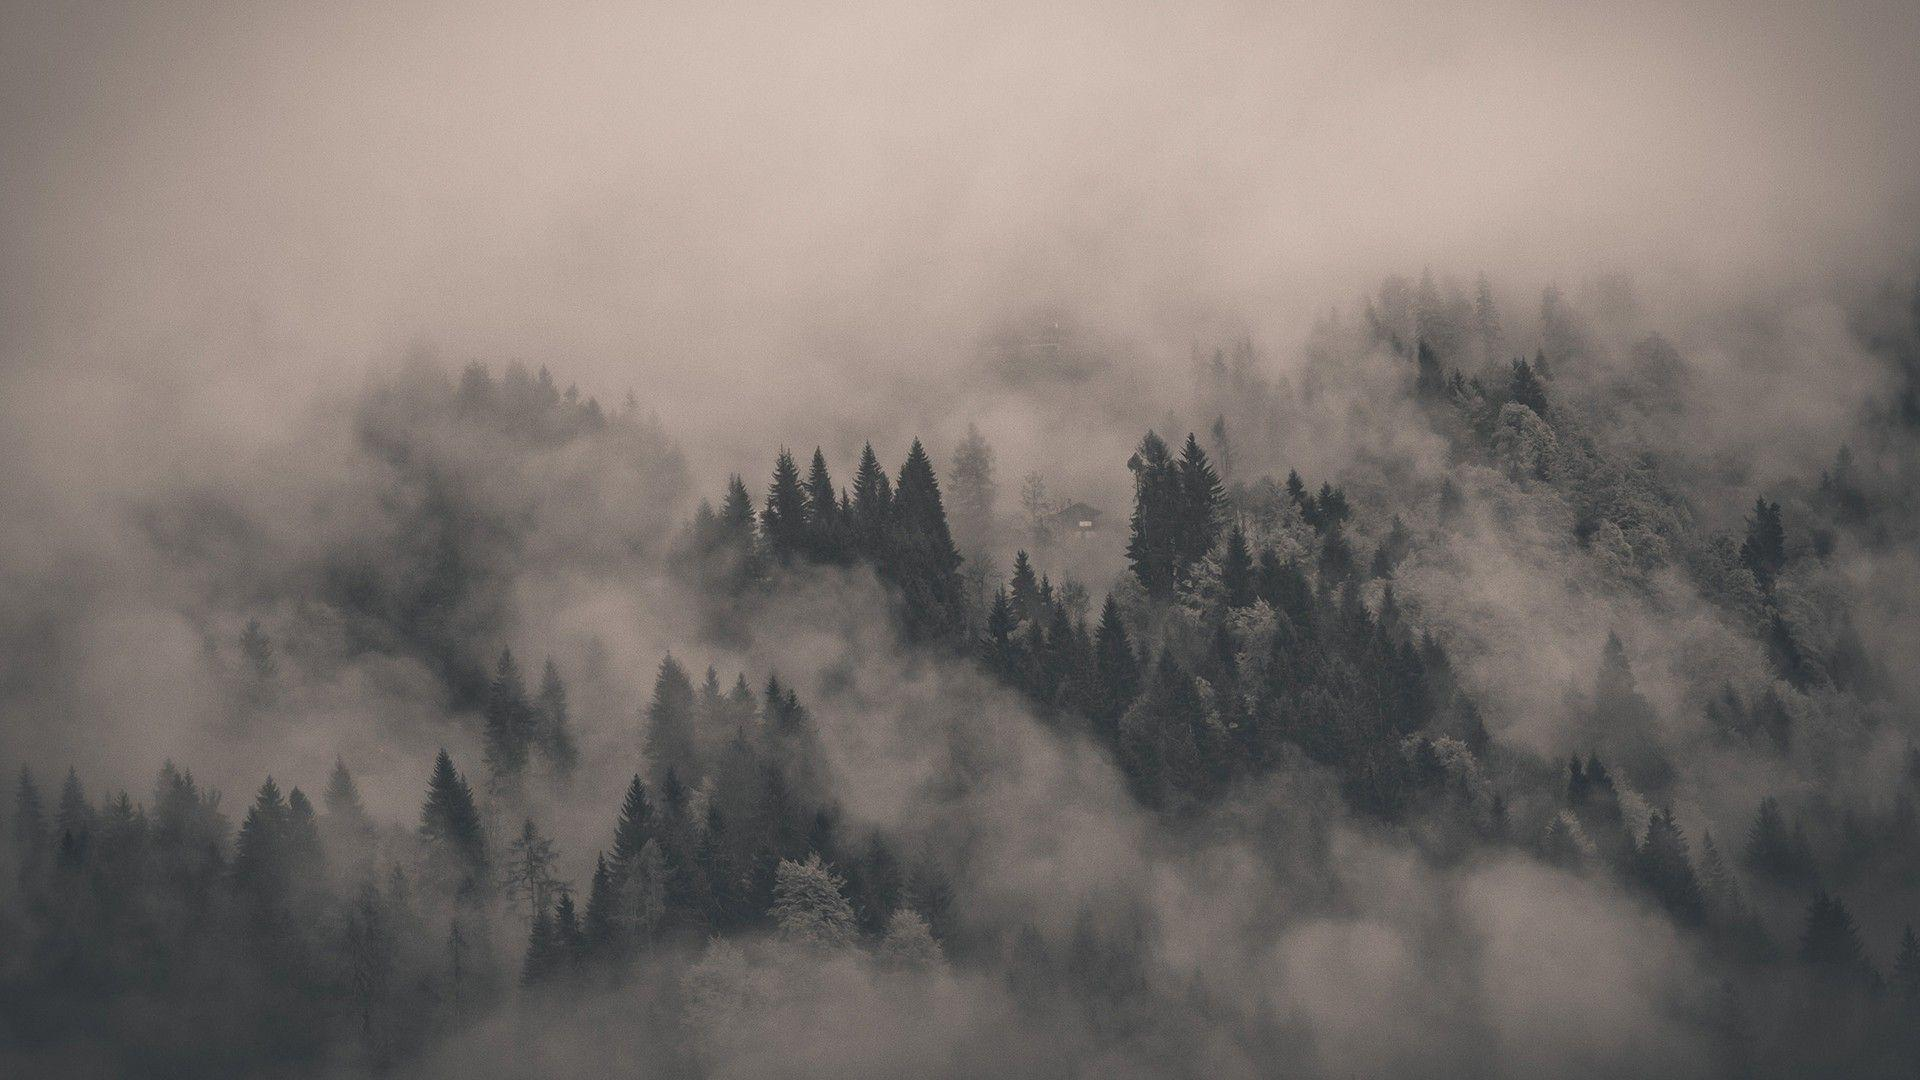 Misty Morning Forest Wallpapers Wallpaper Cave